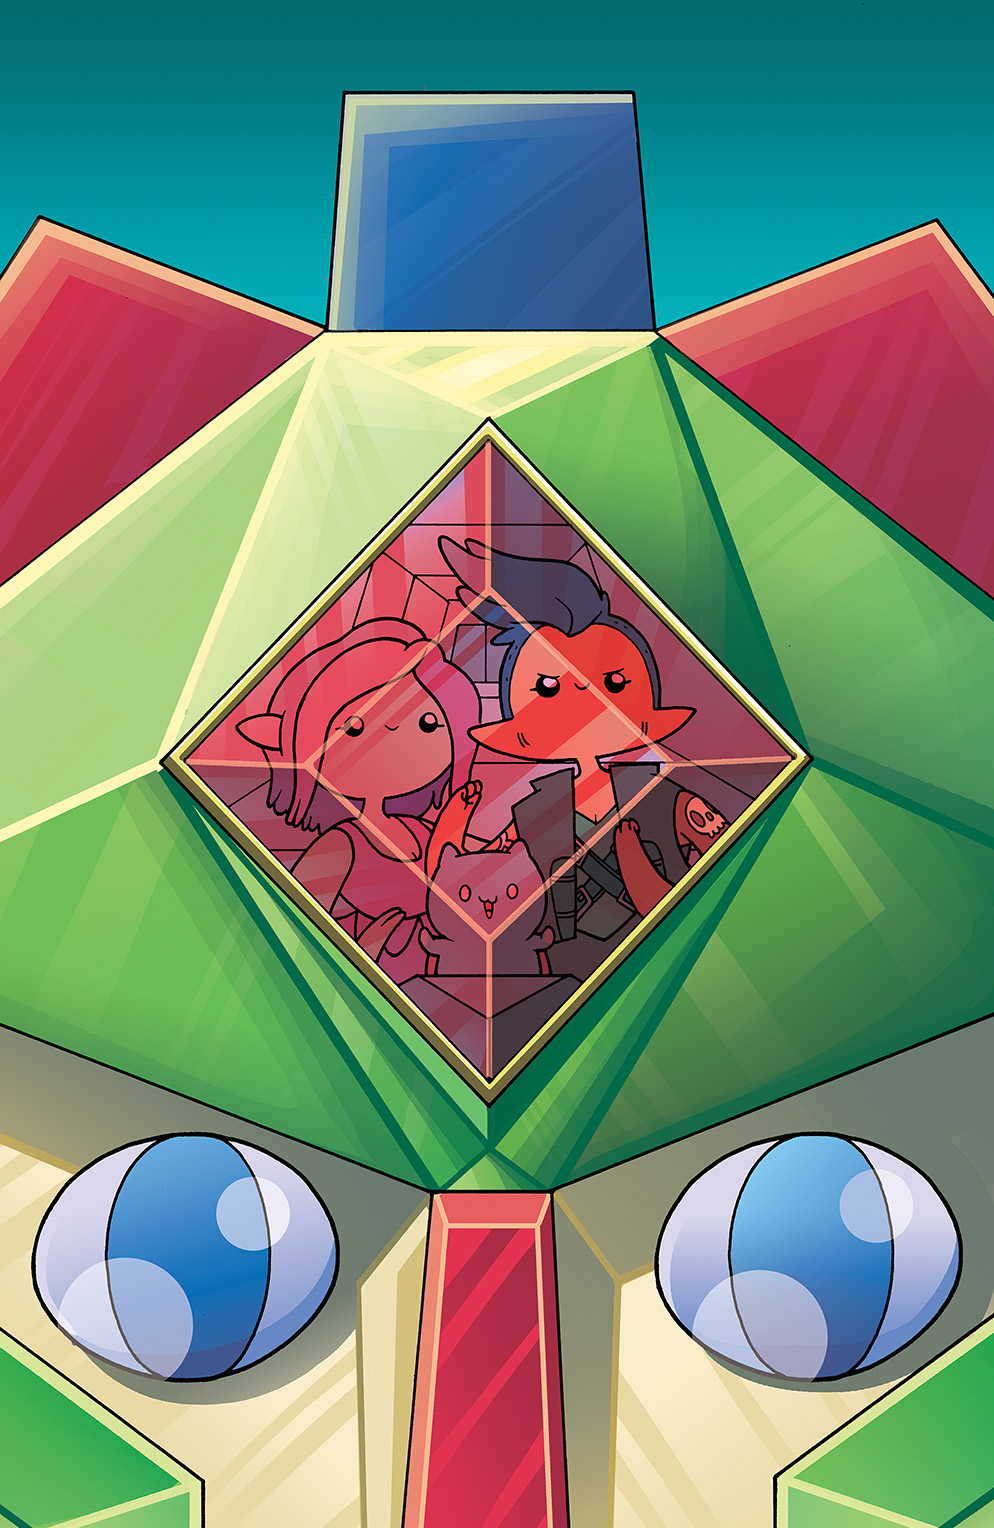 Bravest Warriors #28 Cover A by Ian McGinty